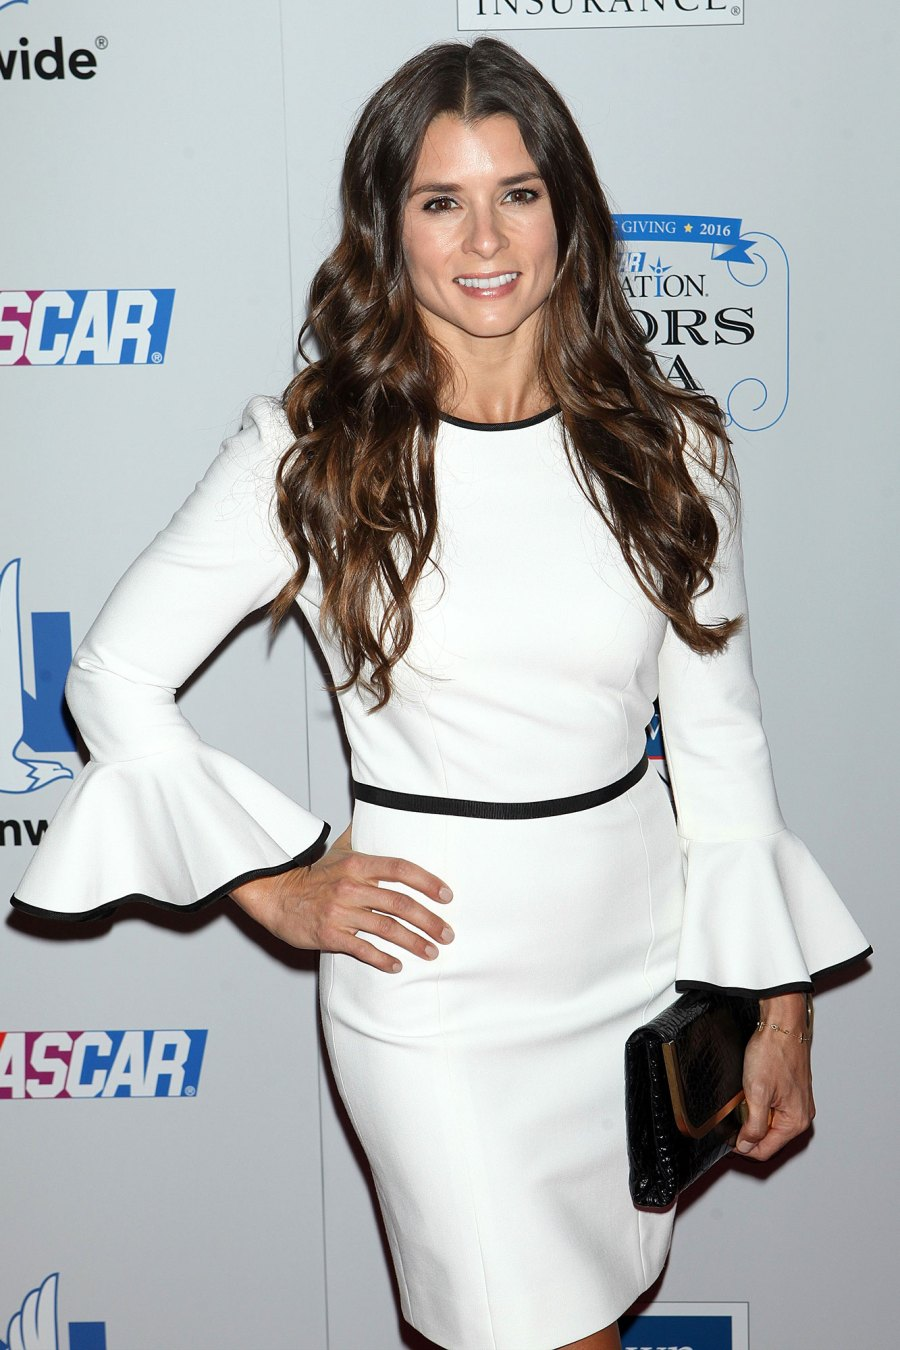 Danica Patrick Boyfriend Carter Comstock 5 Things to Know 3